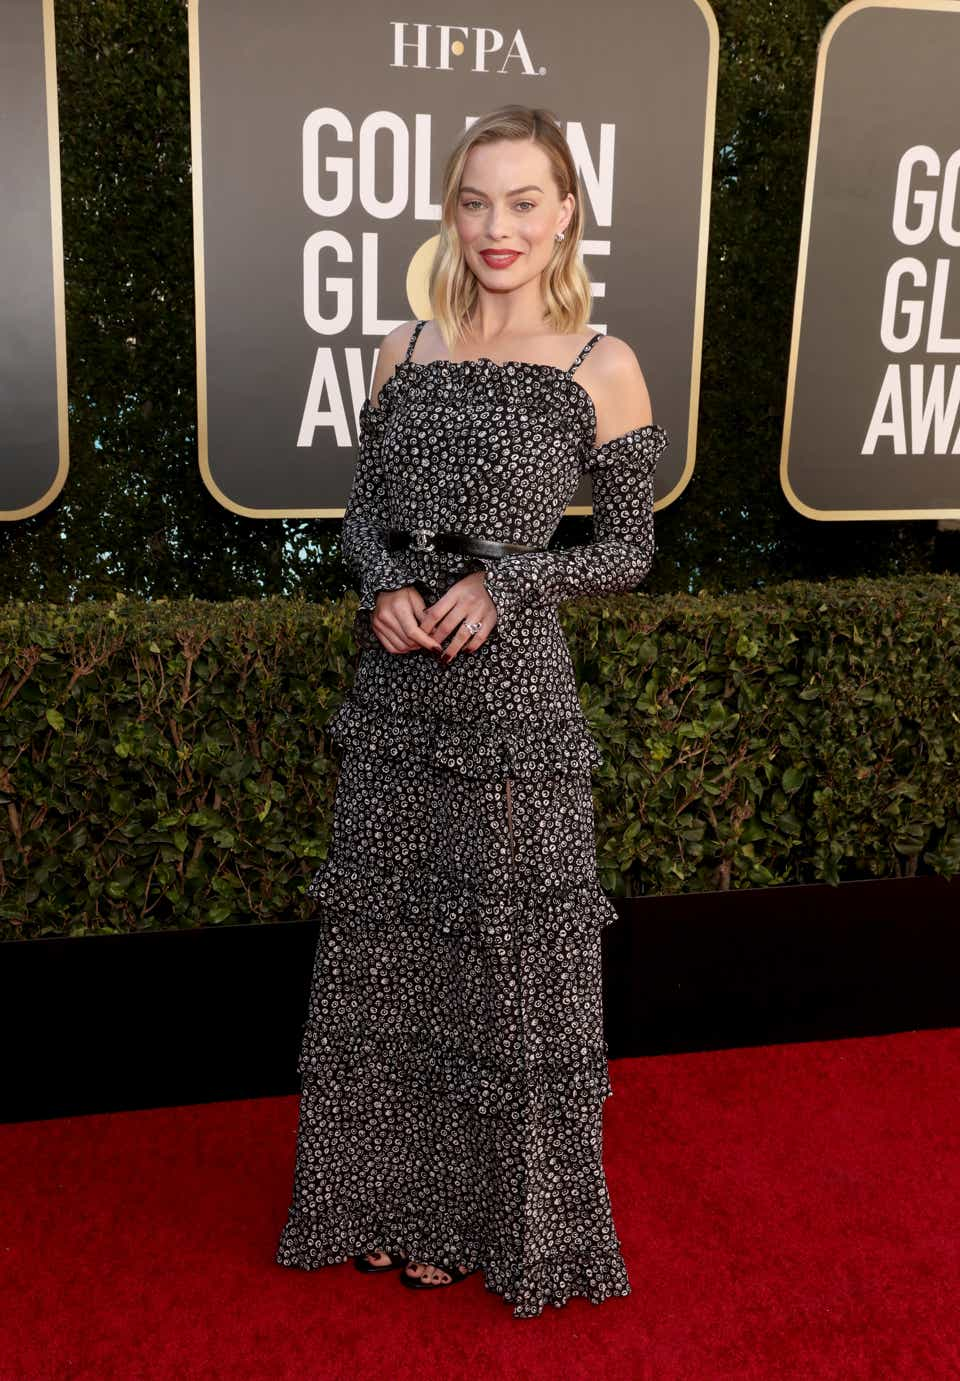 Margot Robbie at the 2021 Golden Globe Awards in a Chanel dress.